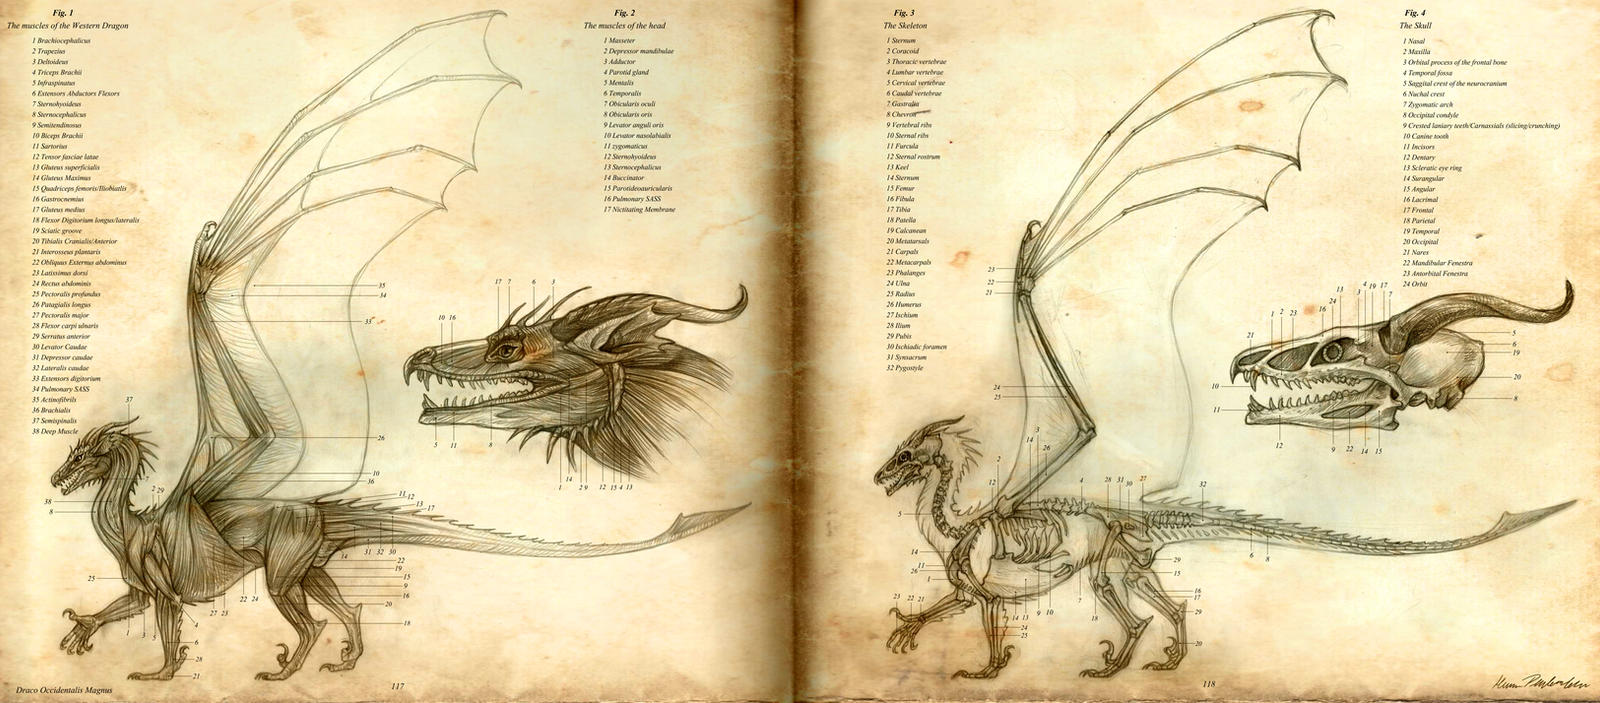 Anatomy of the Western Dragon